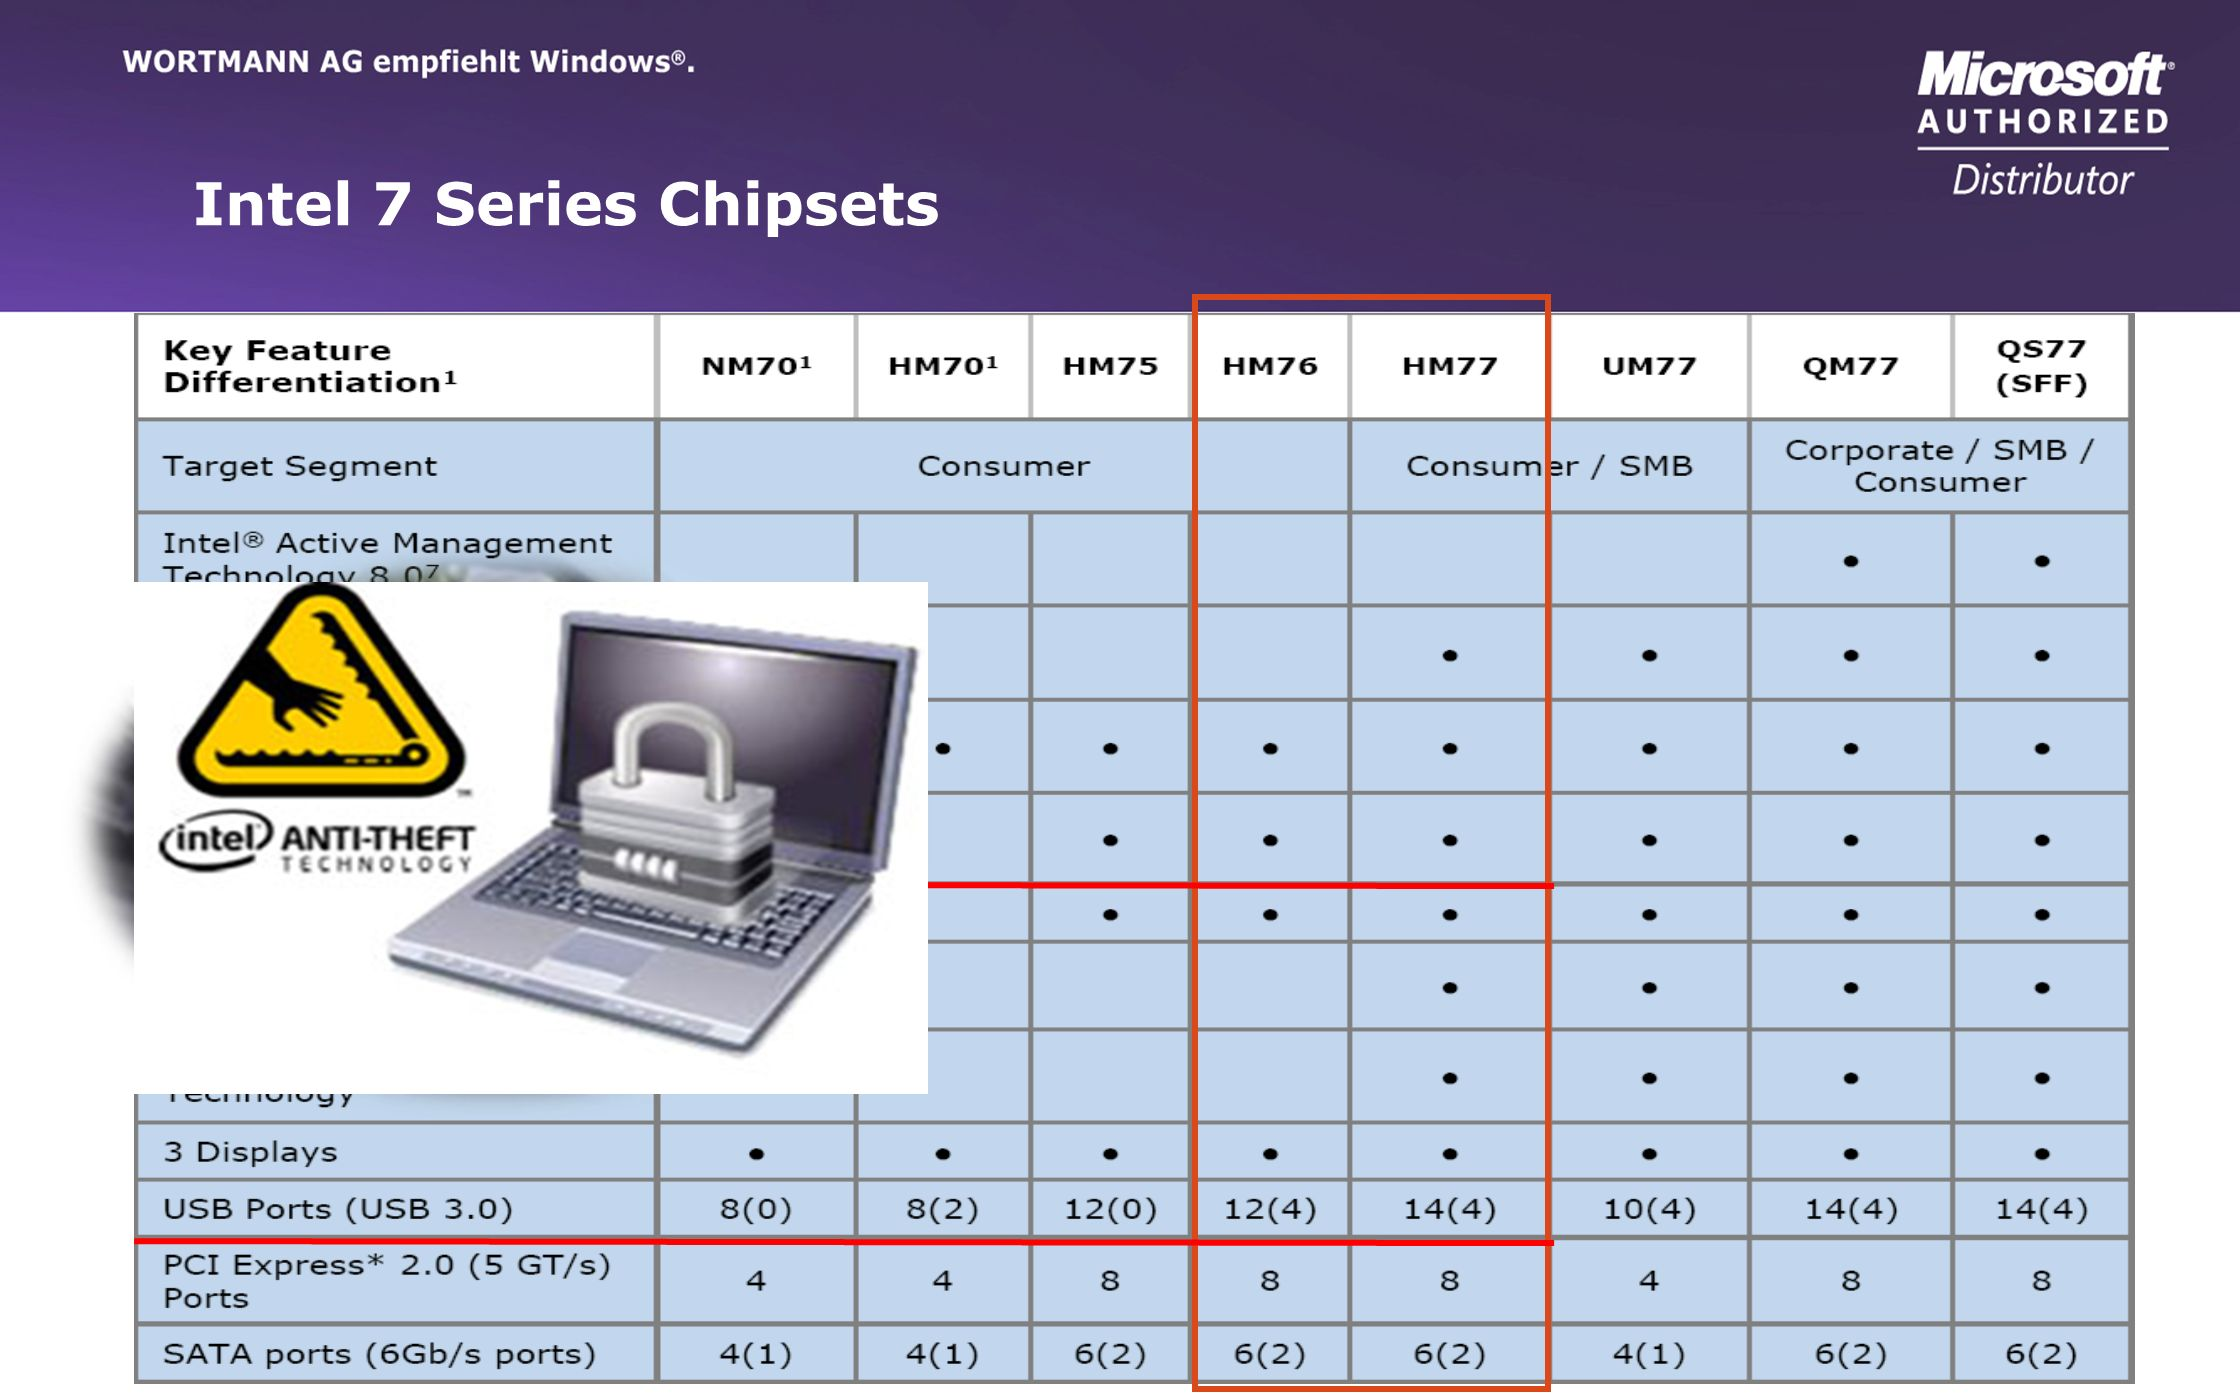 Intel 7 Series Chipsets